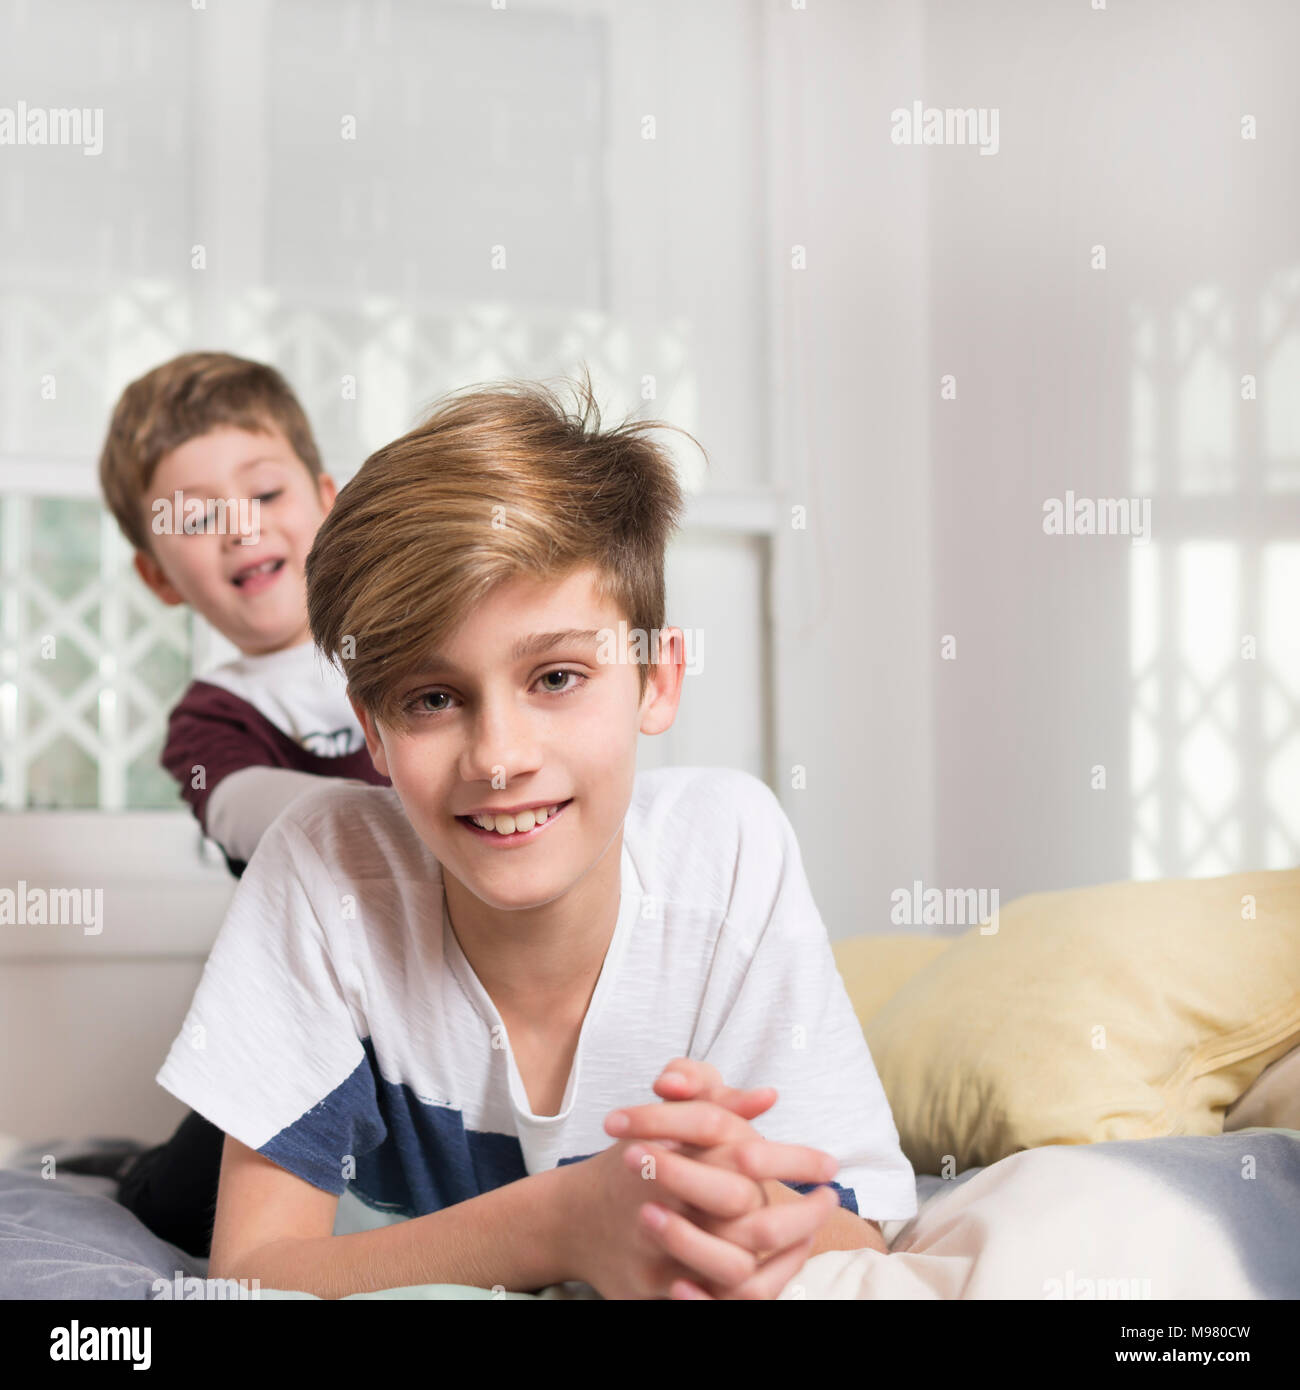 Portrait of smiling boy with younger brother lying on bed at home - Stock Image